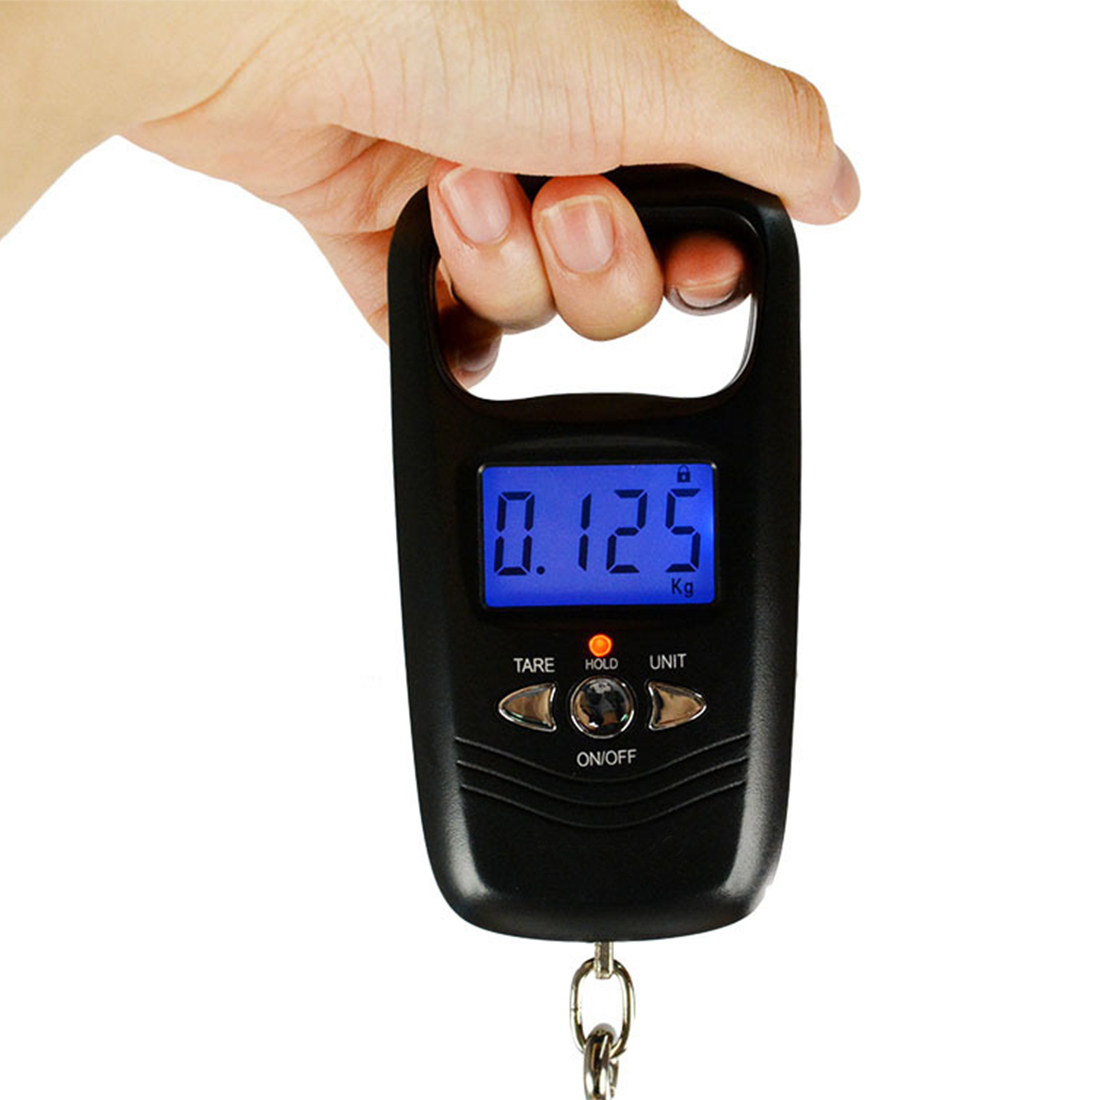 Mini Digital Scale for Fishing Luggage Travel Weighting Steelyard Hanging Electronic Hook Scale 50kg x 1g luggage scaleMini Digital Scale for Fishing Luggage Travel Weighting Steelyard Hanging Electronic Hook Scale 50kg x 1g luggage scale